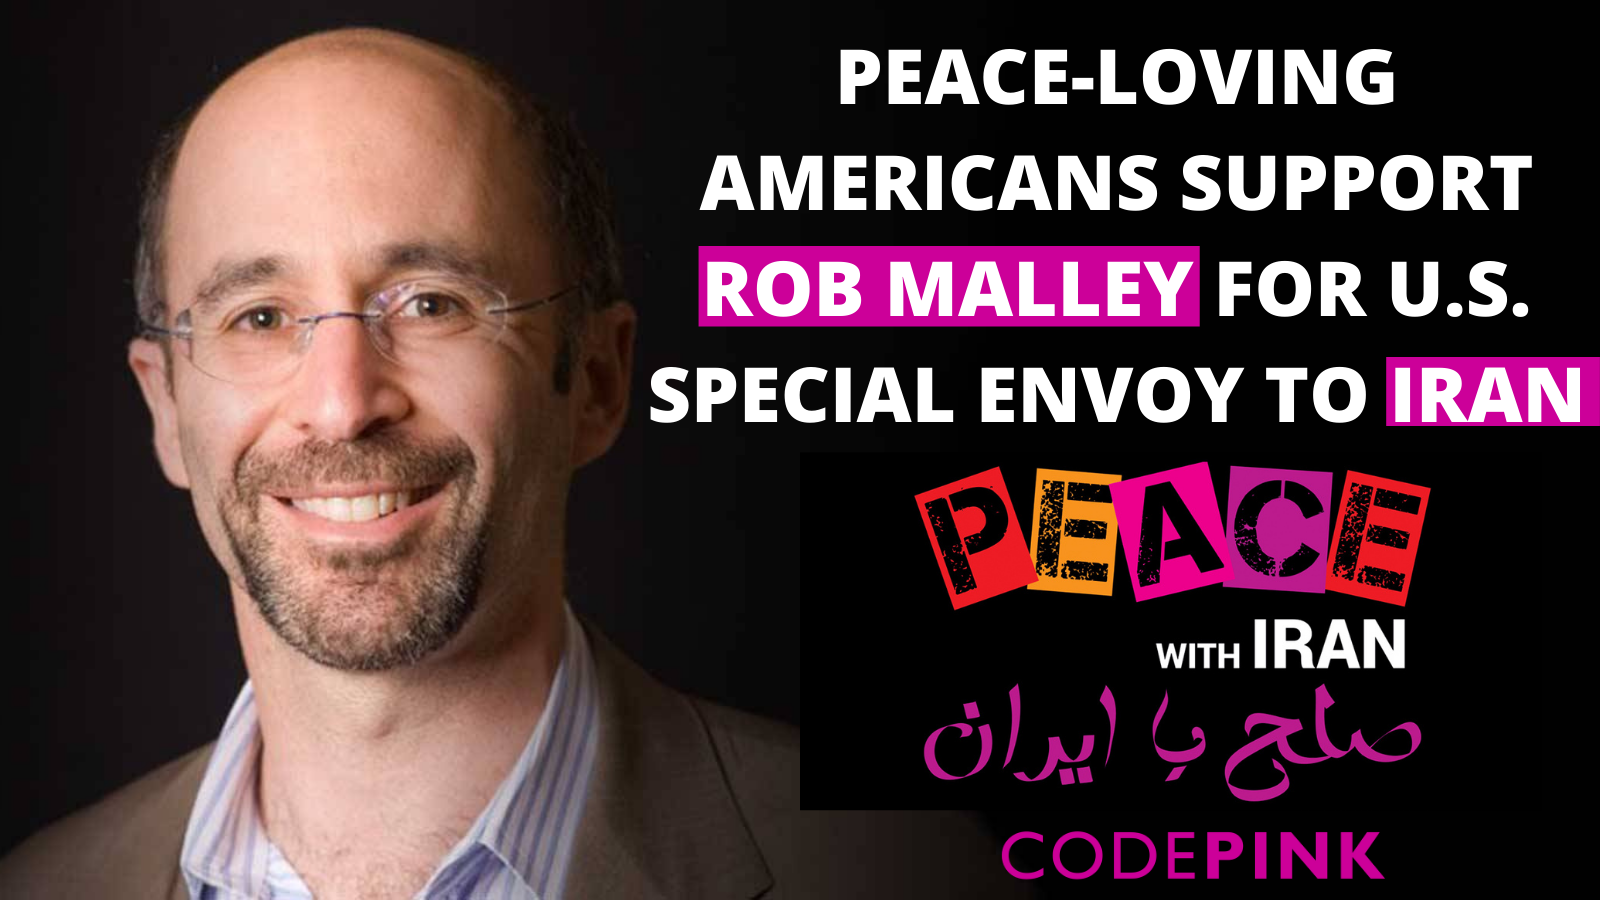 Rob Malley for Special Envoy to Iran